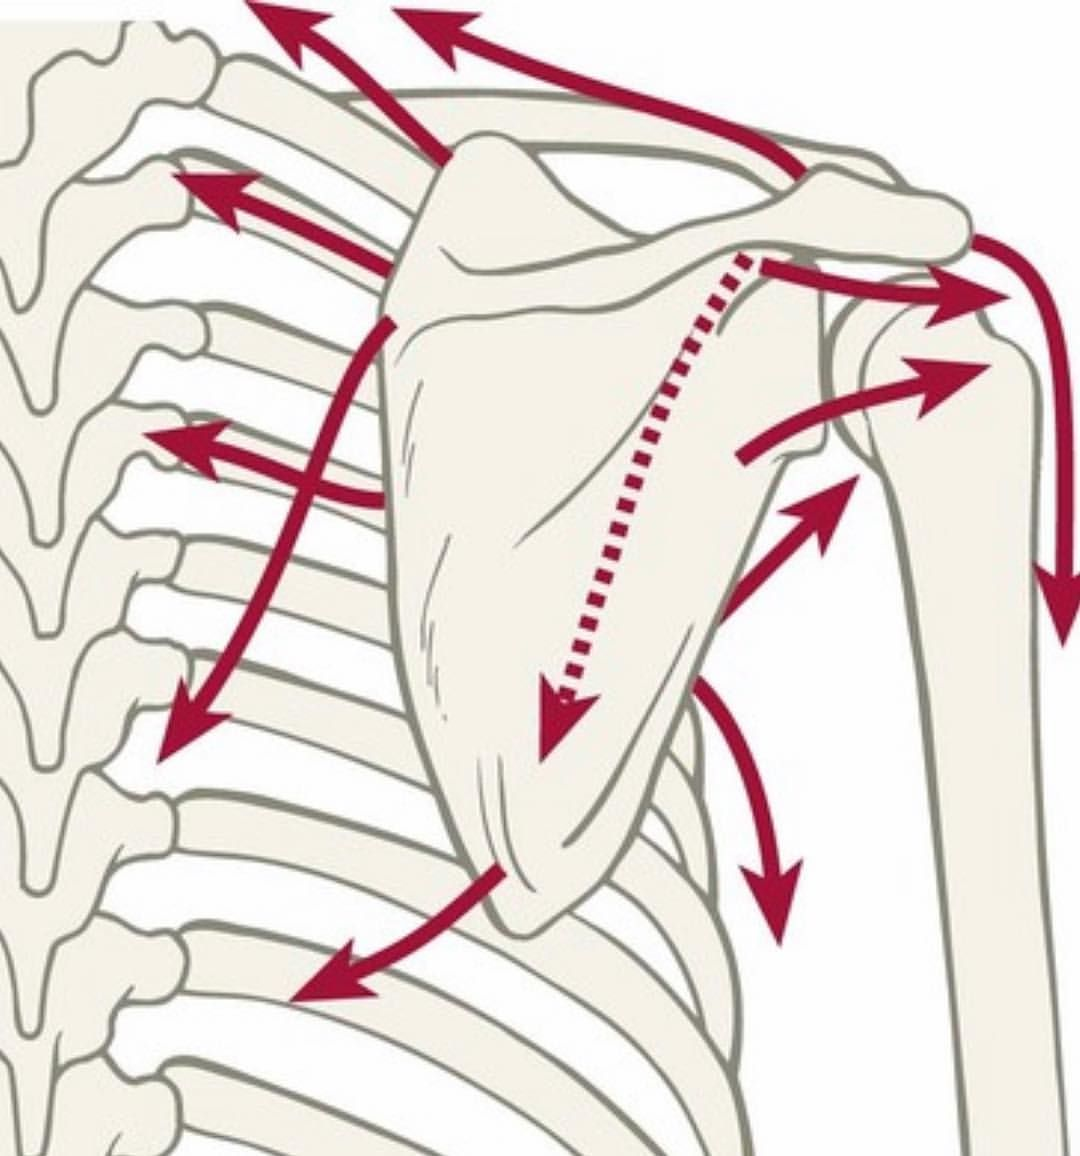 Today, 👨🏻‍🏫@vinnierehab teaches...SCAPULA! . 17 muscles ...